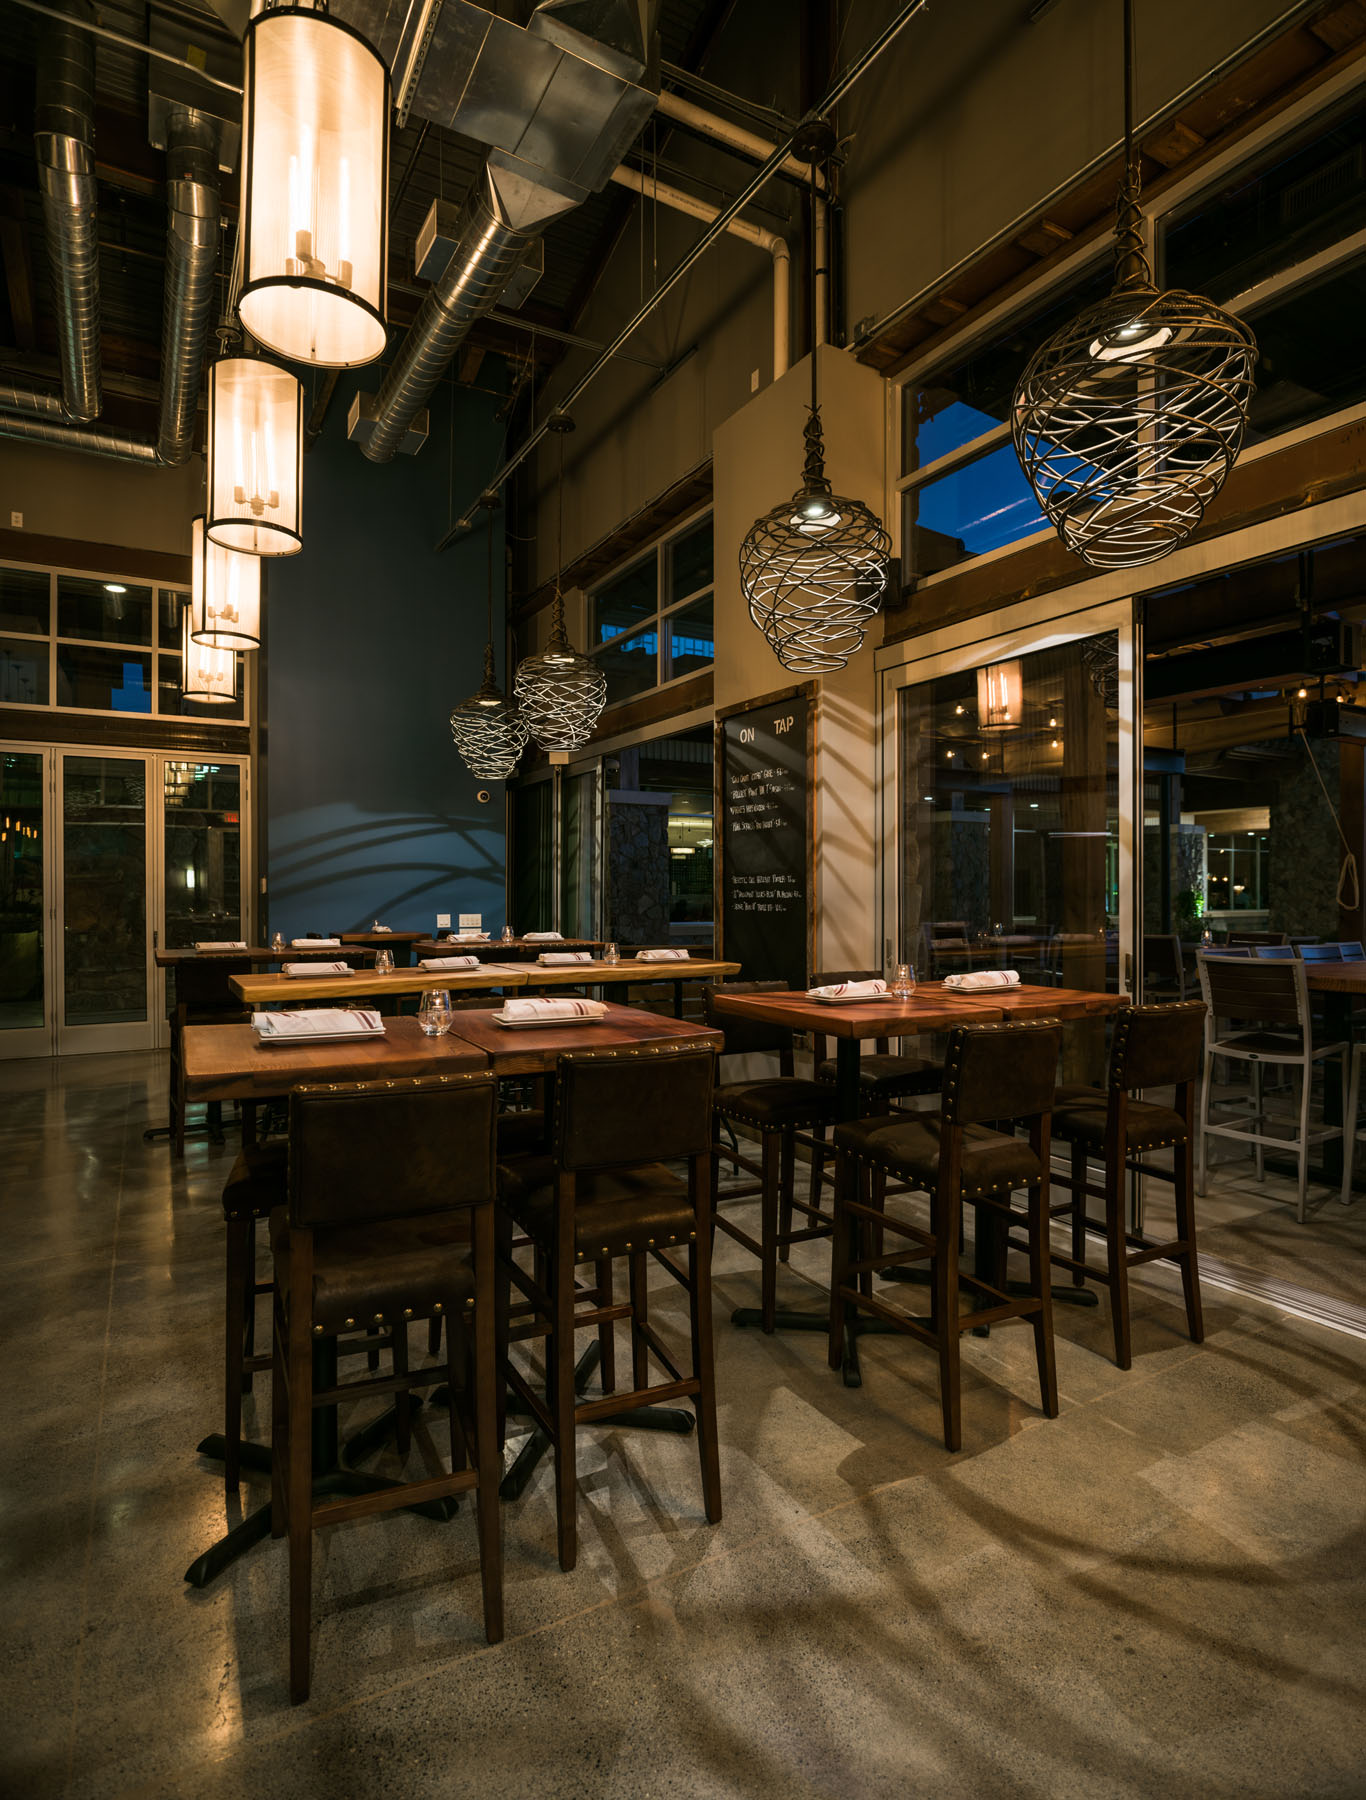 Cupertino Architecture Interior / Exterior Photography at Night - by Bay Area commercial photographer Chris Schmauch